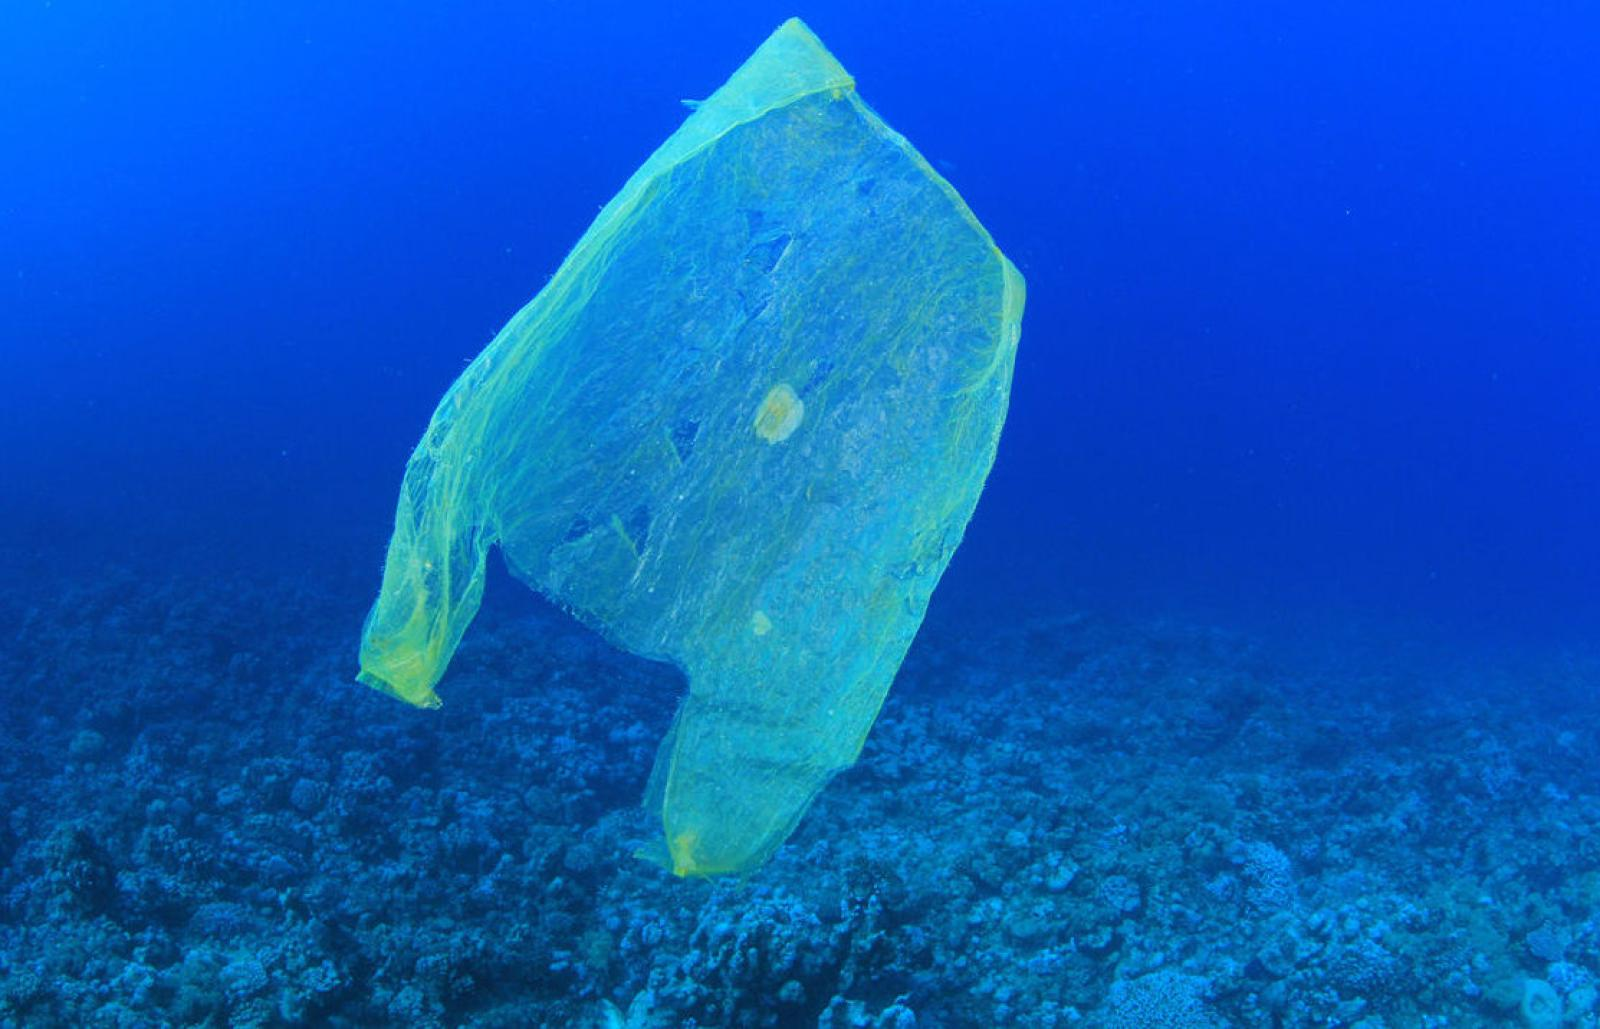 Plastic waste. Credit: MichaelisScientists / Wikimedia Commons. Licenza: CC BY-SA 4.0.